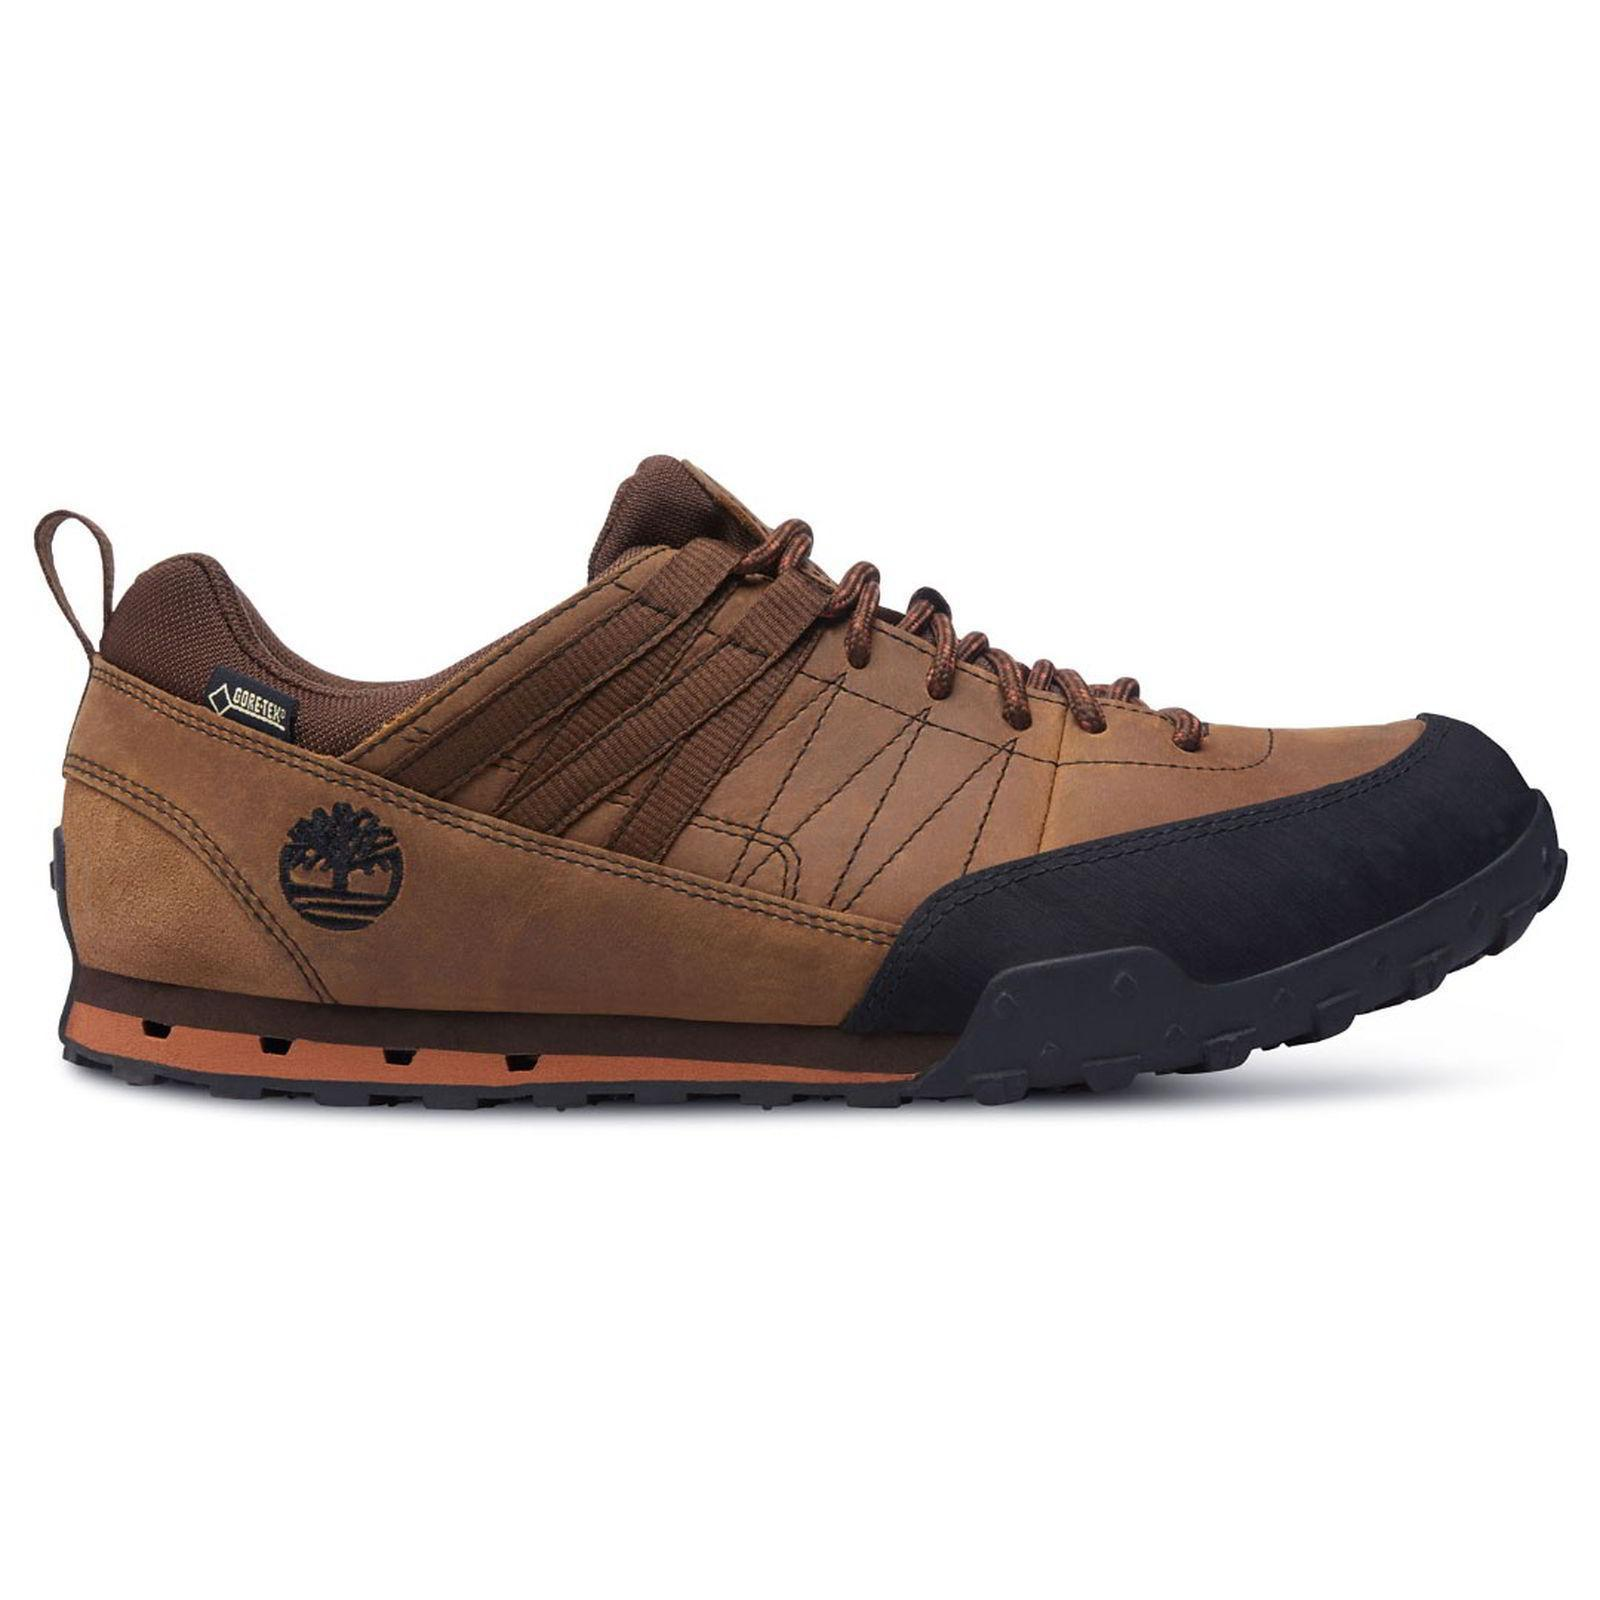 e0fbc5577ce84 Timberland Greeley Approach Low Leather With Gore-tex Membrane Shoes ...